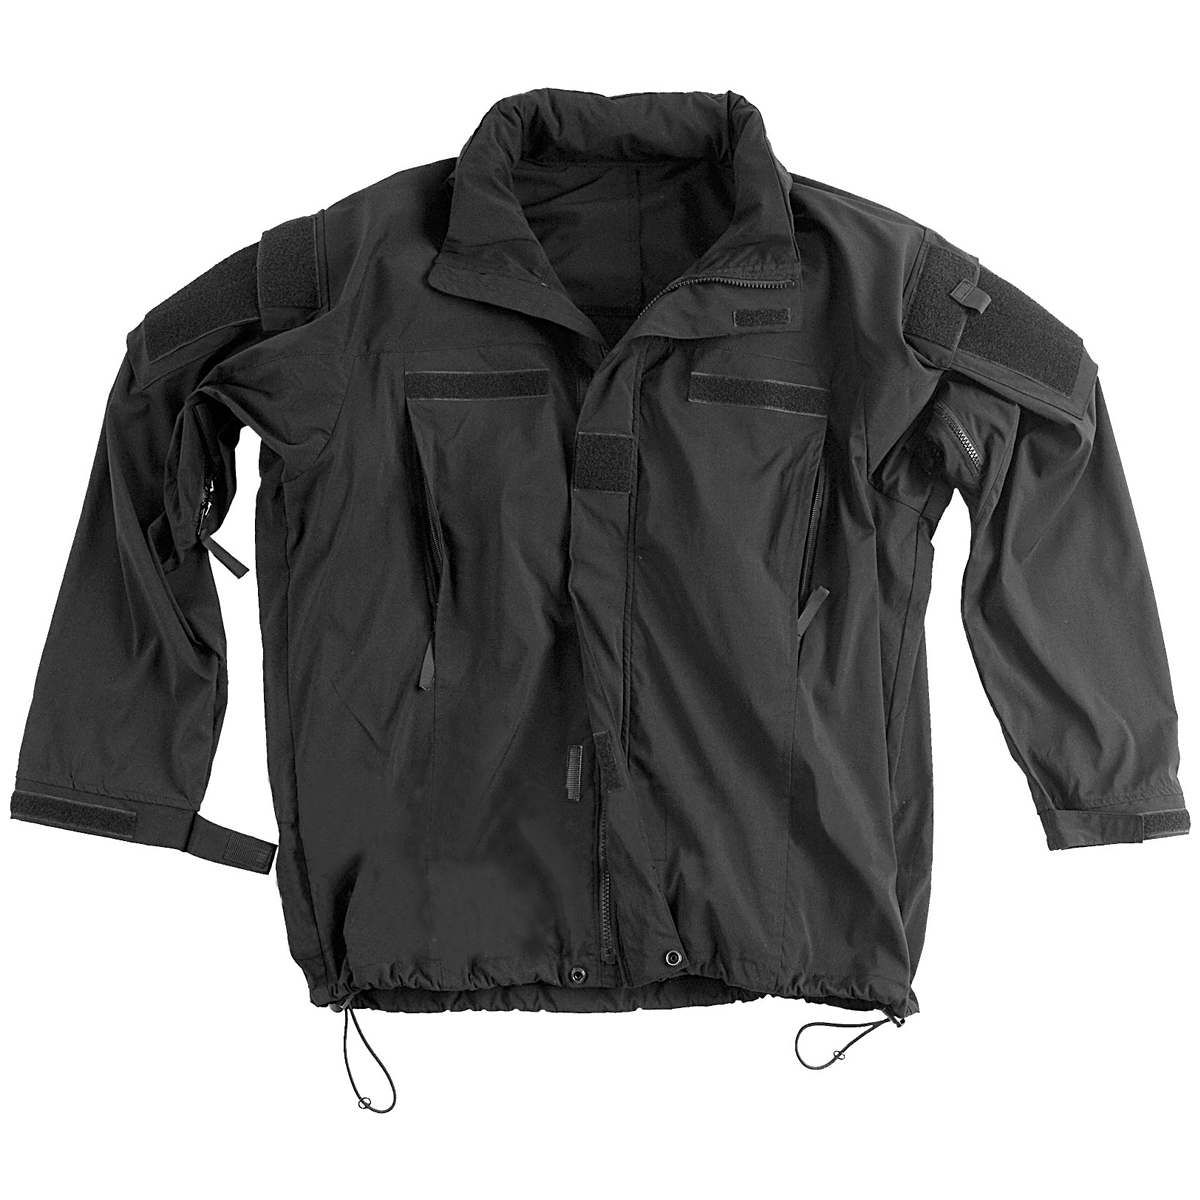 helikon tactical soft shell waterproof jacket police. Black Bedroom Furniture Sets. Home Design Ideas